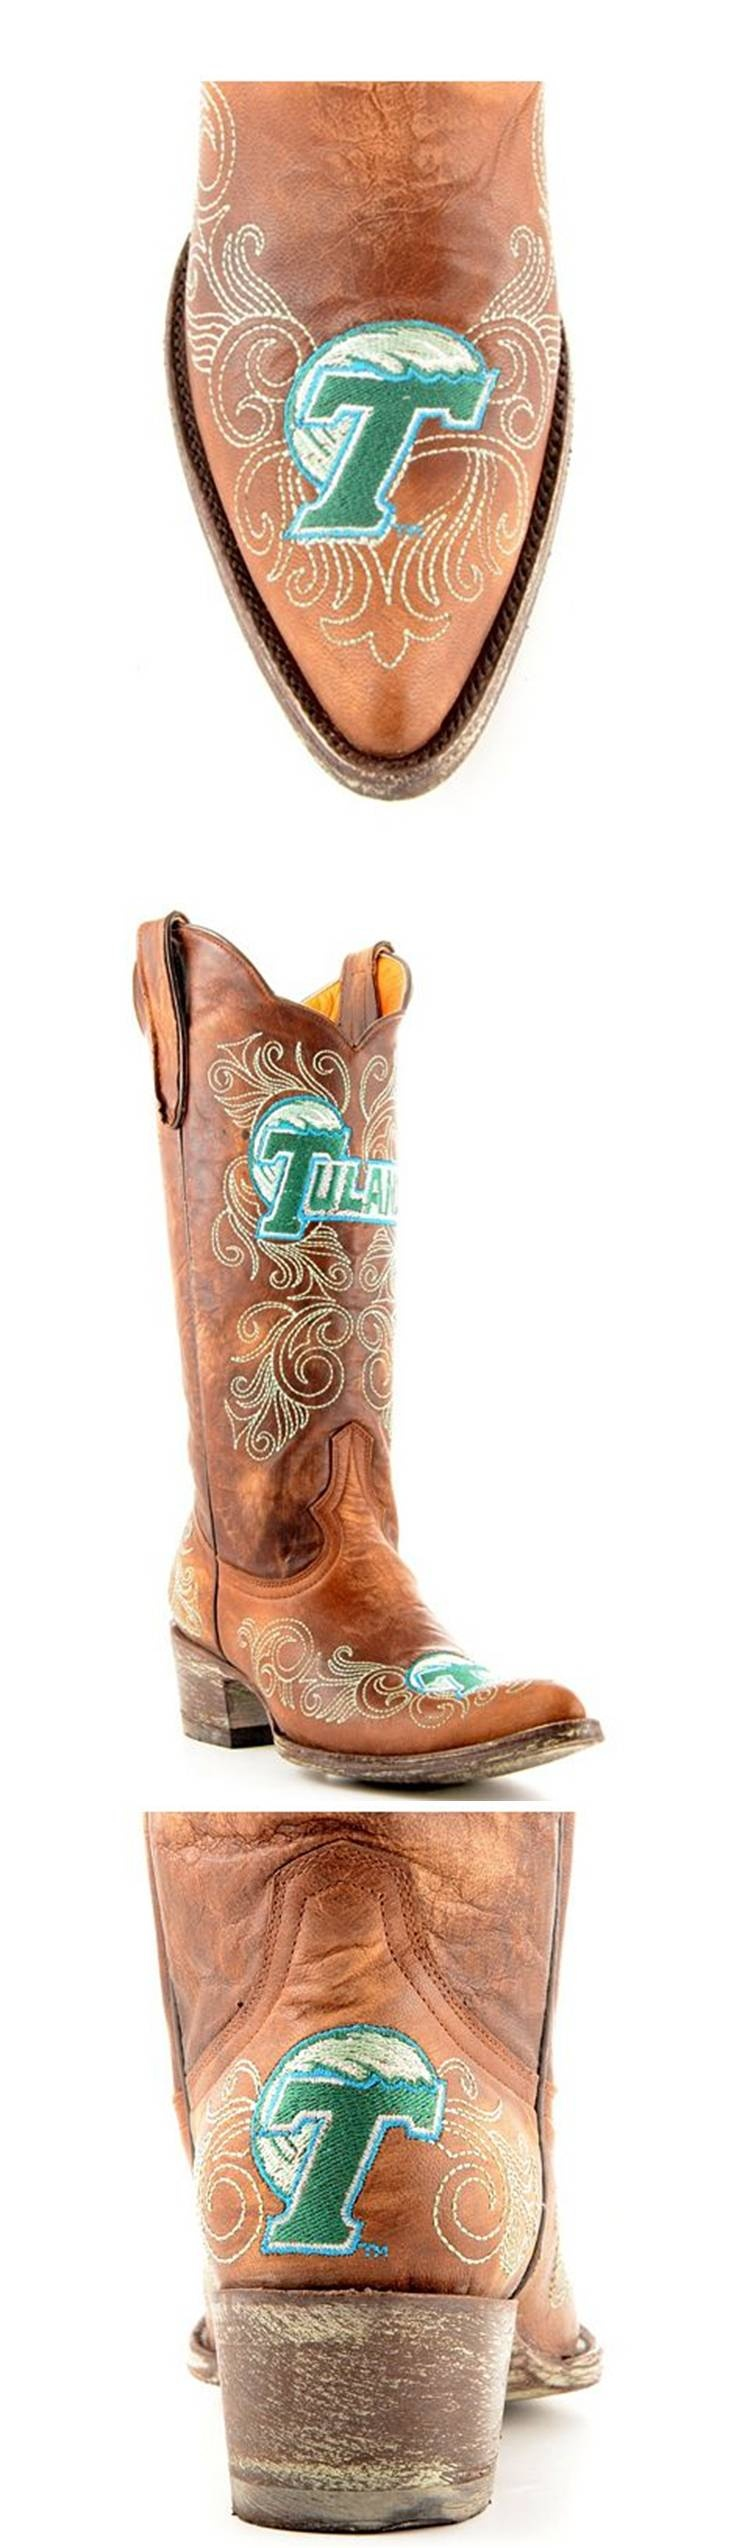 Home college tulane green wave tulane green wave silver plated - Tulane University Green Wave Distressed Pointed Toe Cowboy Cowgirl Boots With Logo